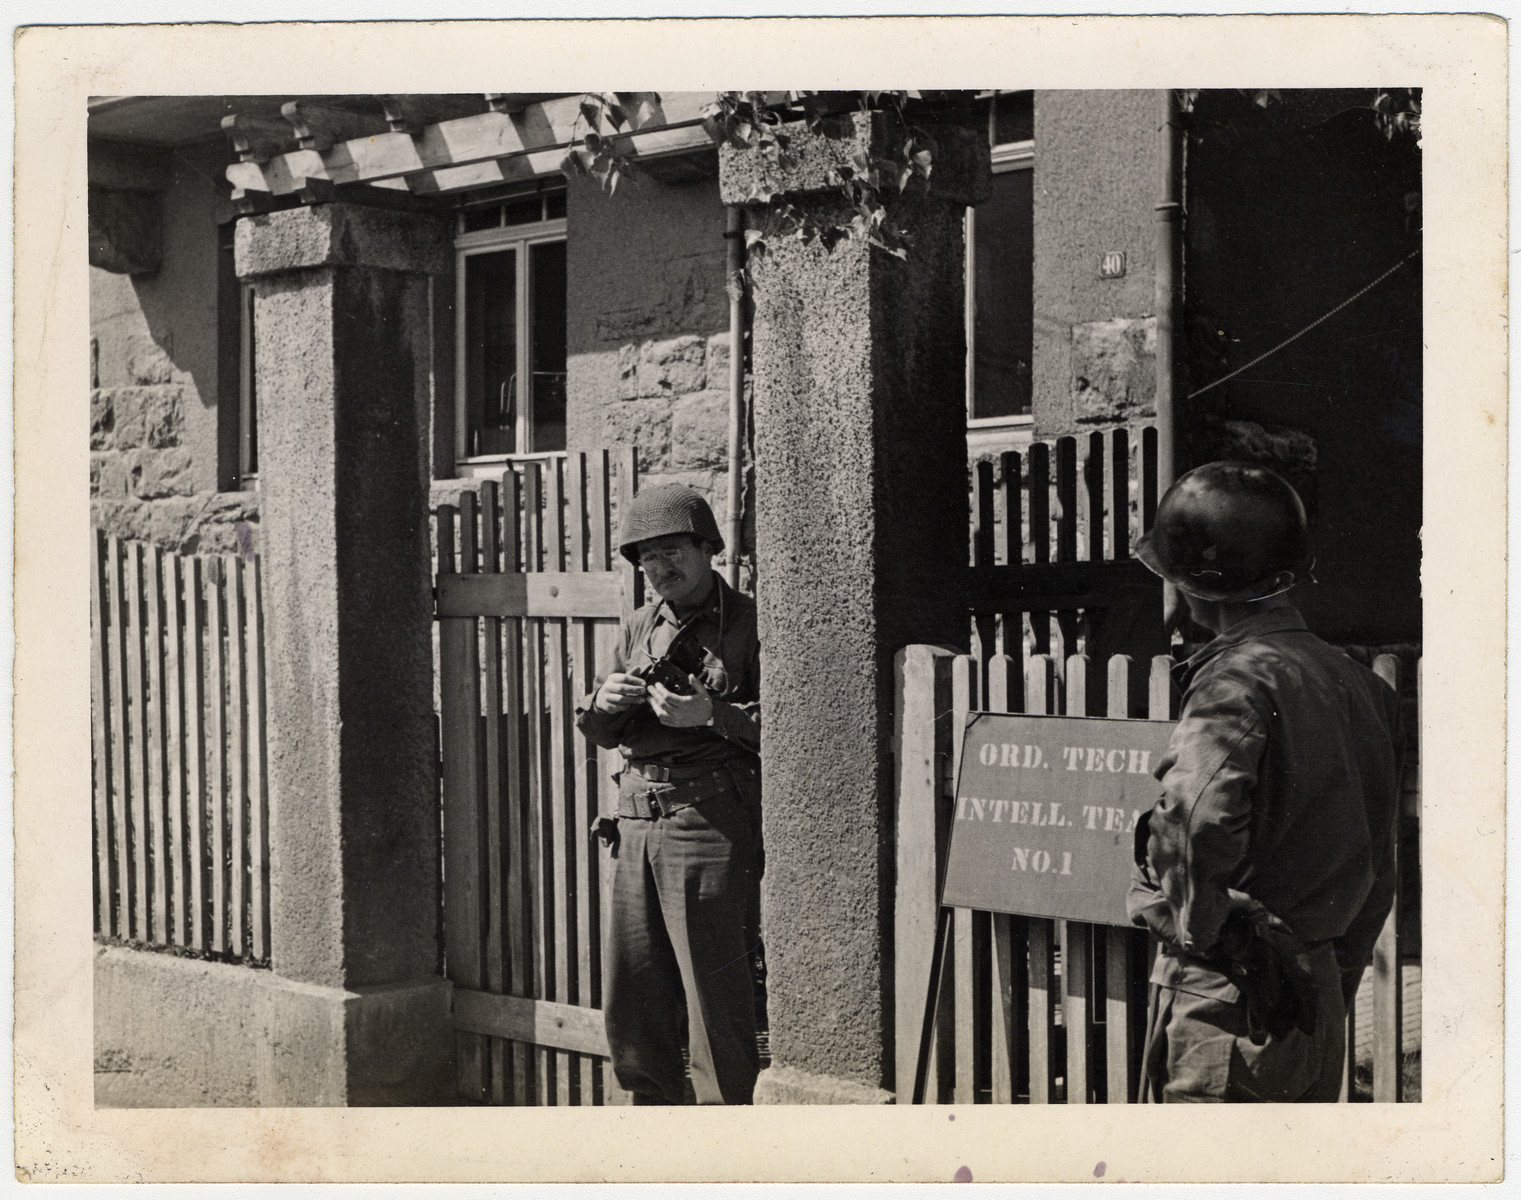 William Bostwick Curtis stands by the headquarters of the Ord. Tech Intelligence Team holding his camera.